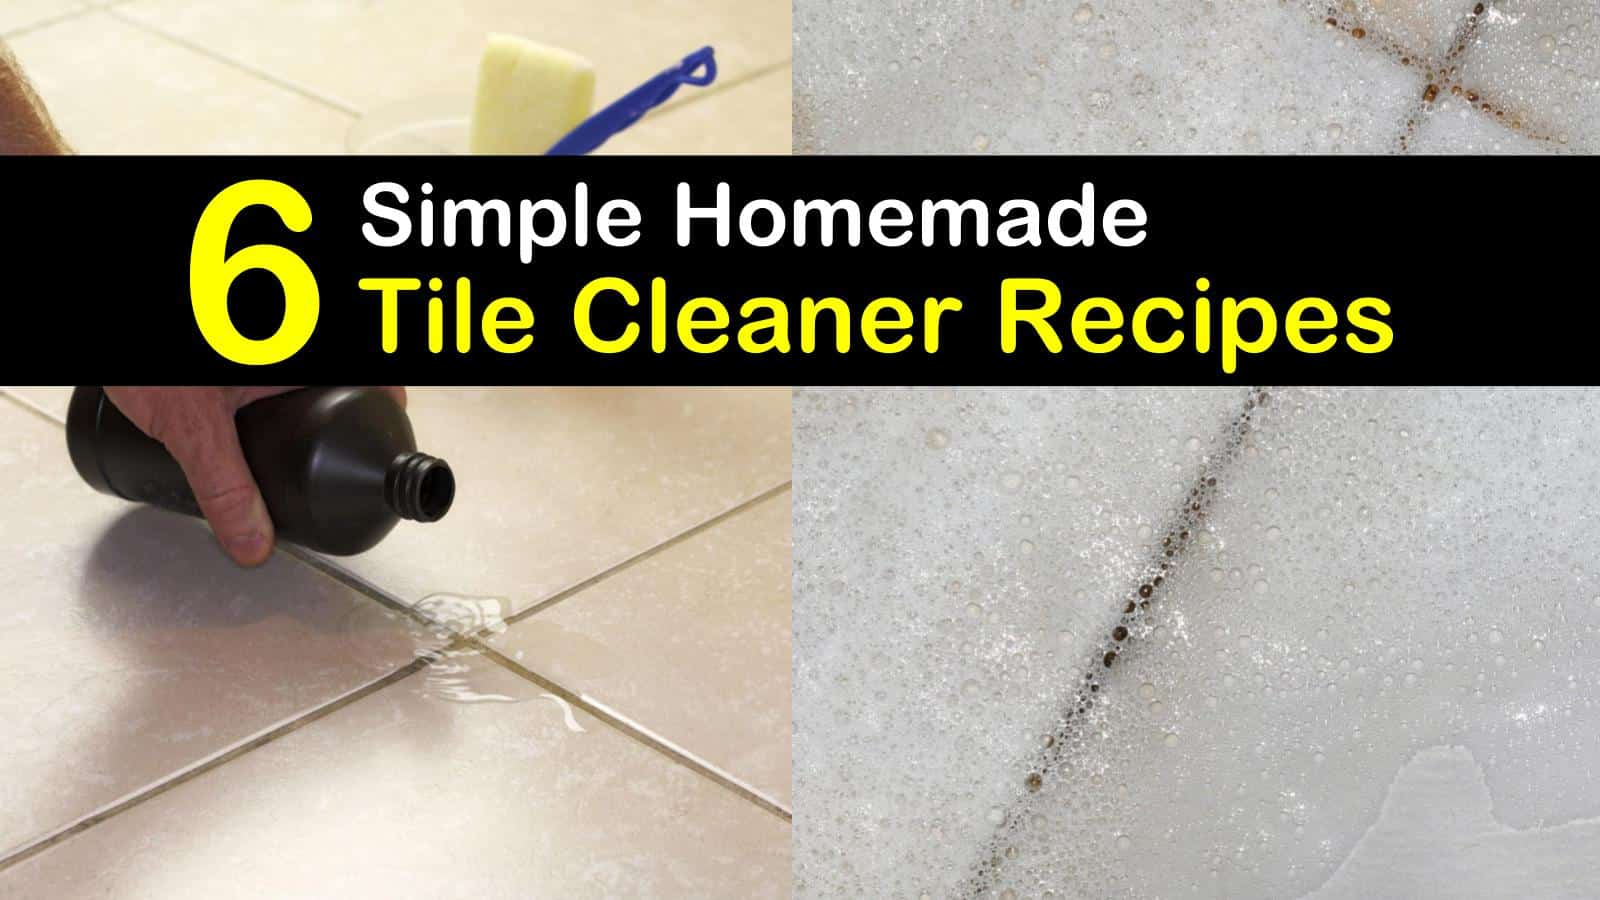 homemade tile cleaner titleimg1